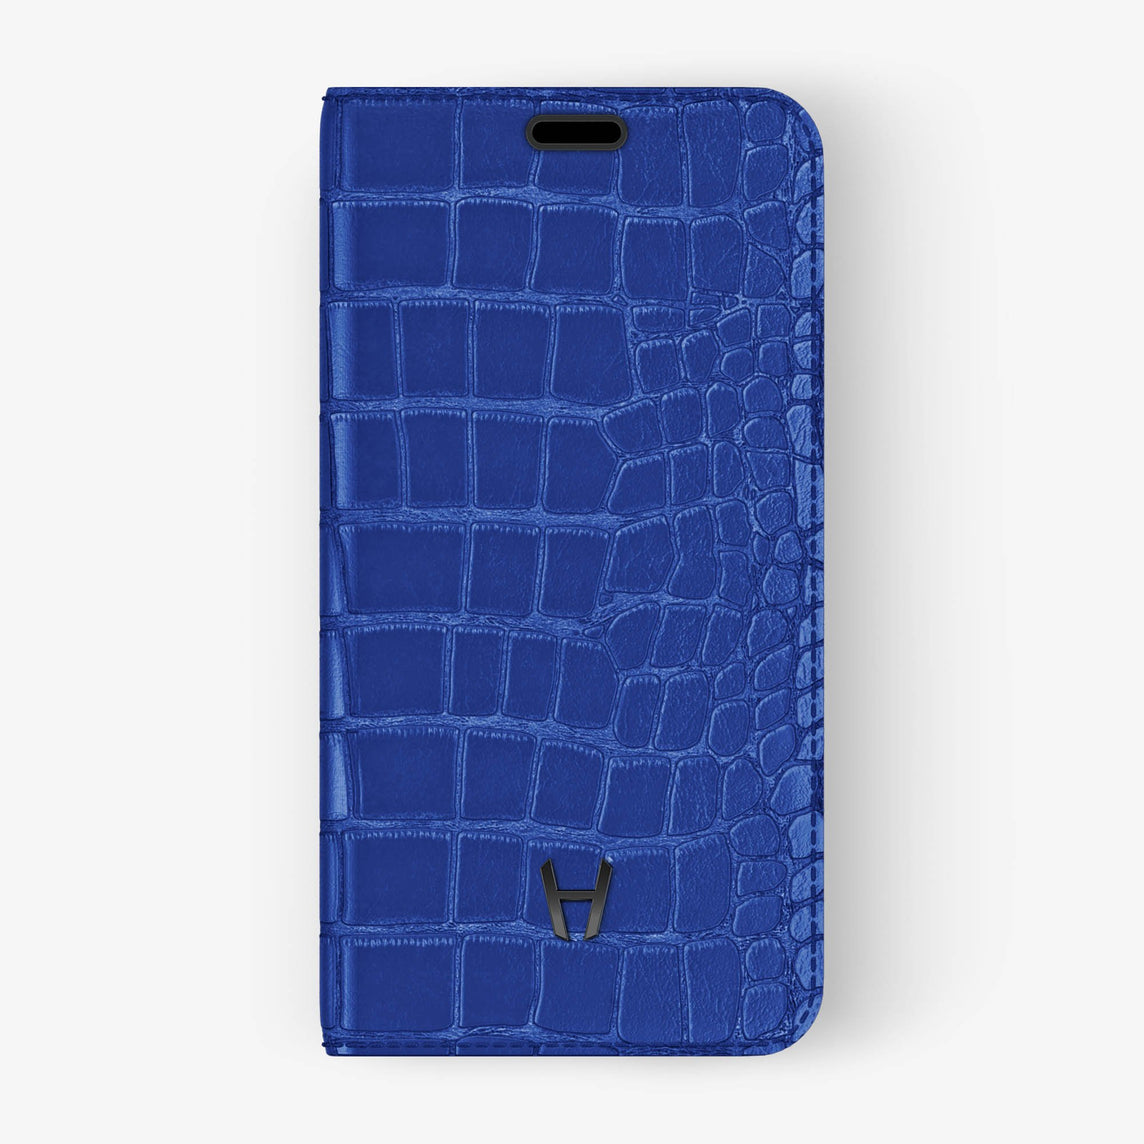 Alligator Folio Case iPhone Xr | Peony - Black without-personalization